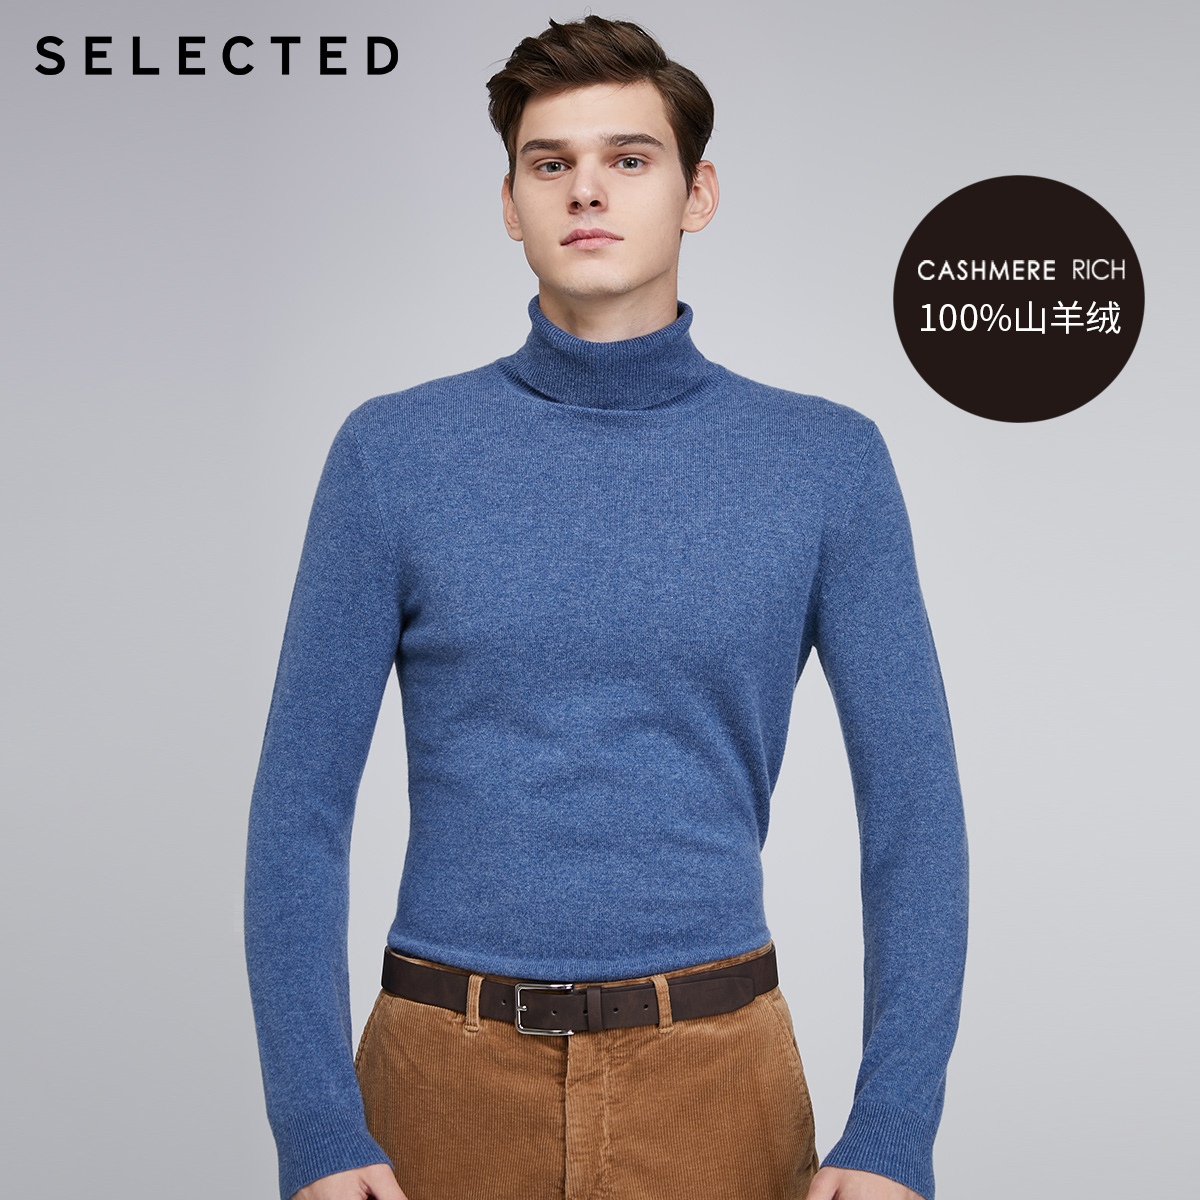 SELECTED Men's 100% Cashmere Turtleneck Sweater High-neck Pullover Knit Clothes S | 419424564